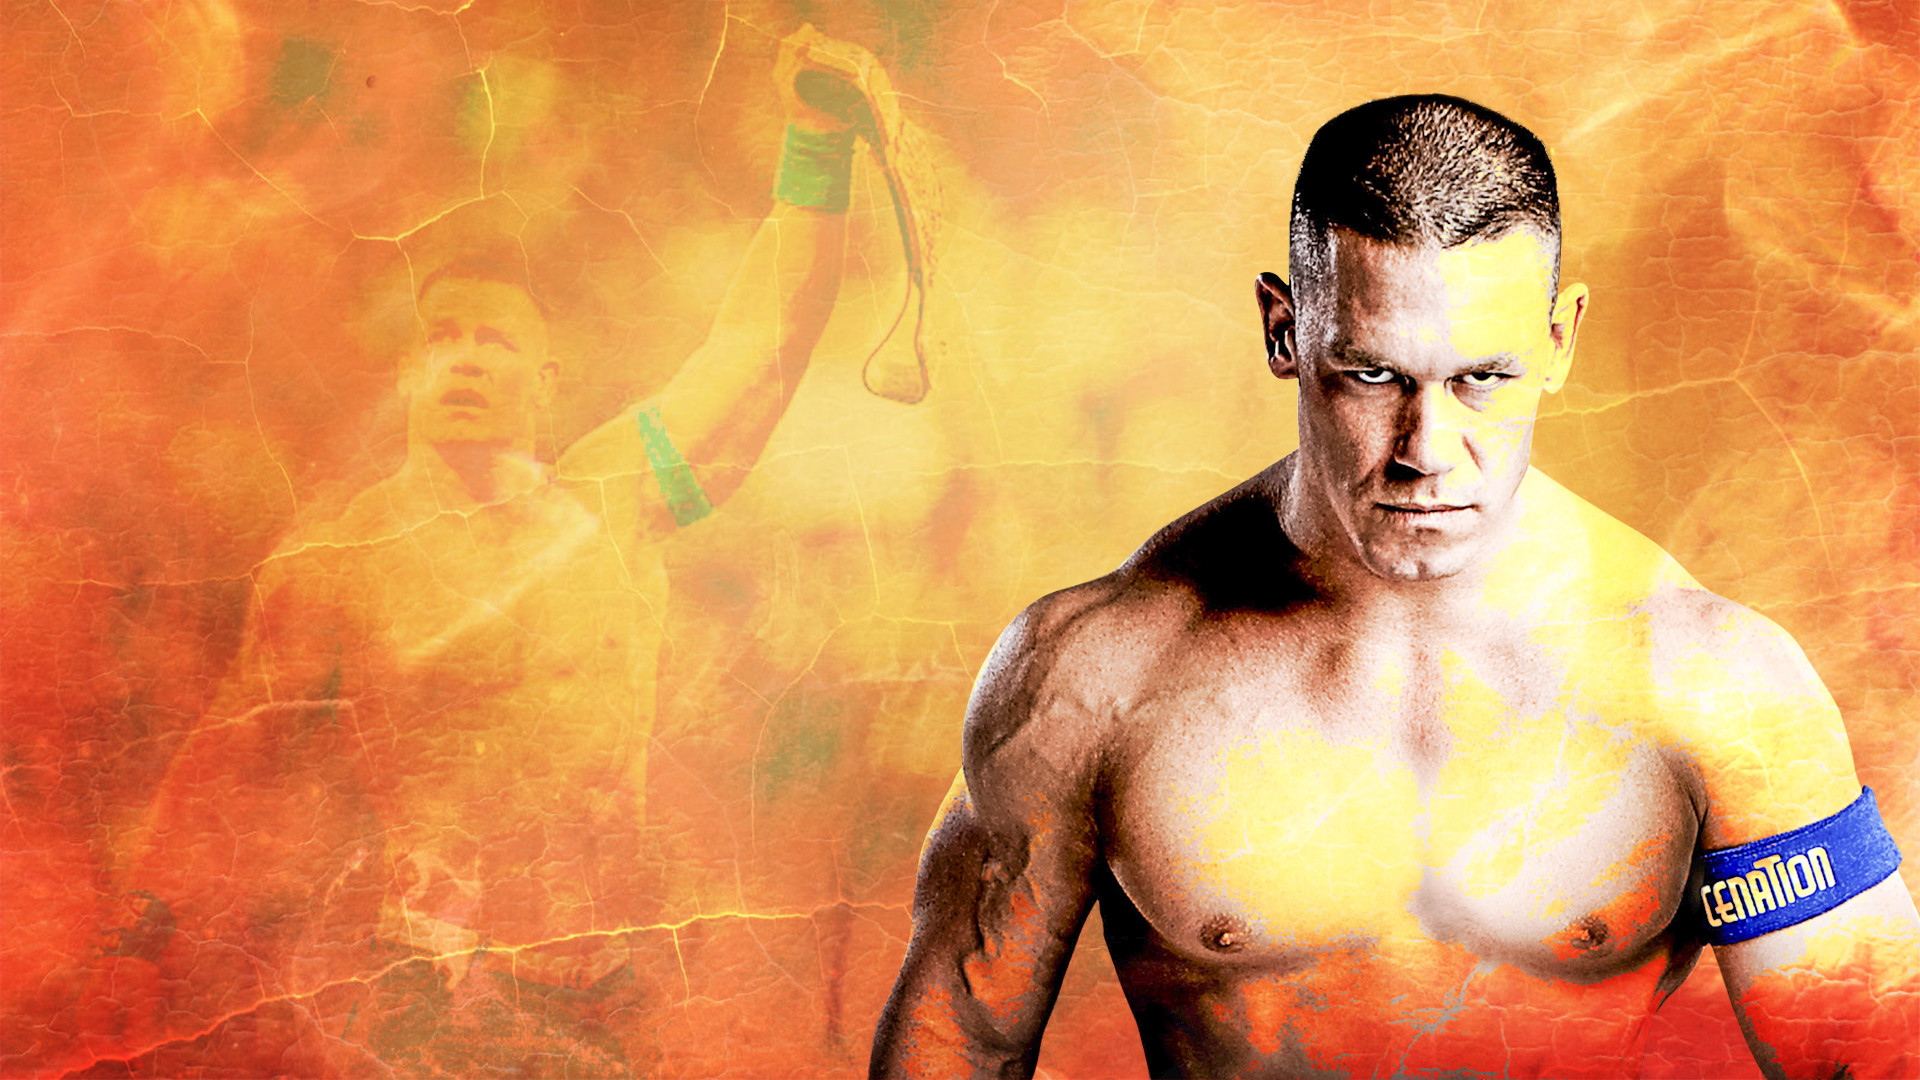 1920x1080 For Roman Reigns wallpapers click here. John Cena ...